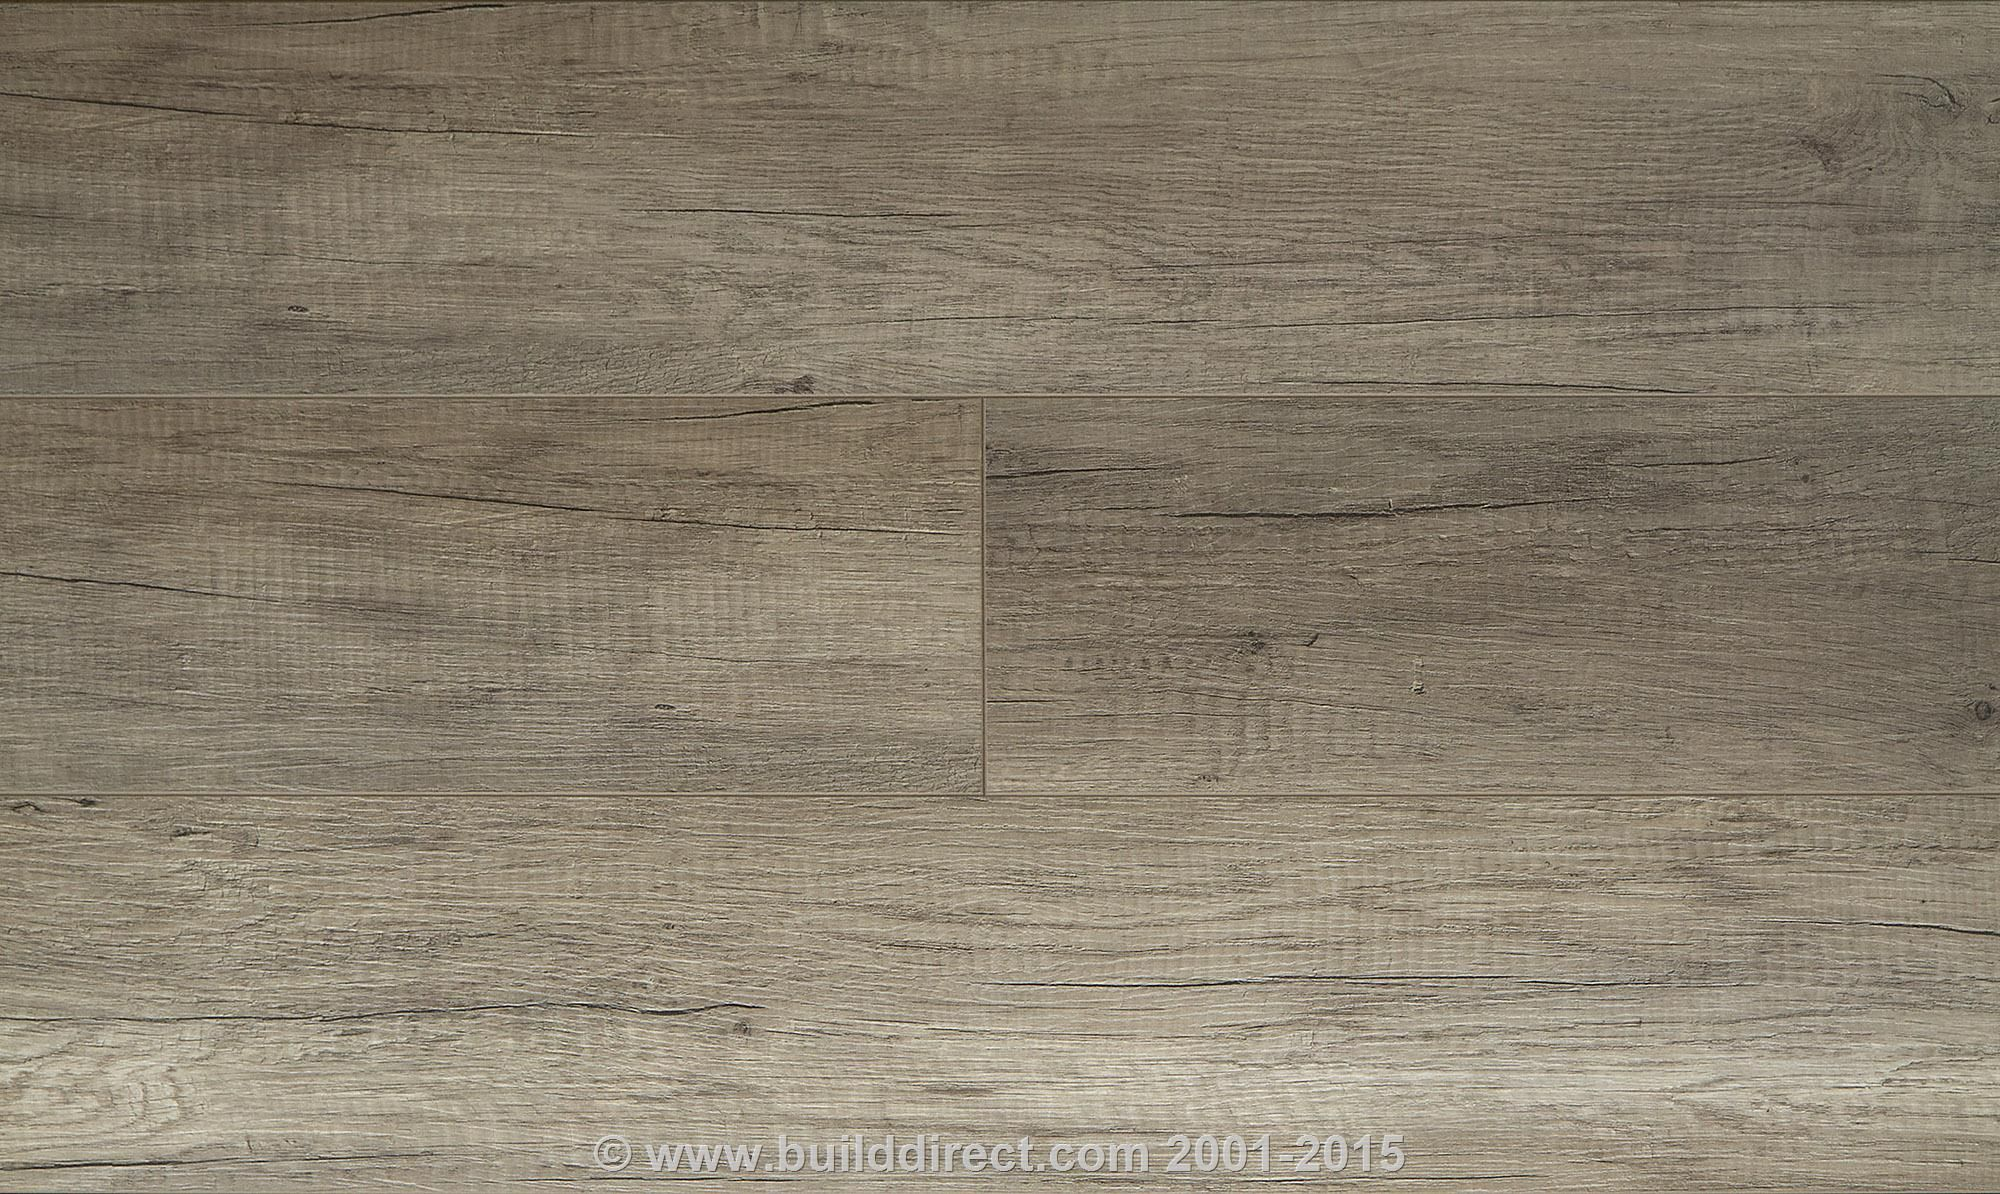 Laminate 10mm European Peaks Collection Olympus Oak Flooring Builddirect Laminate